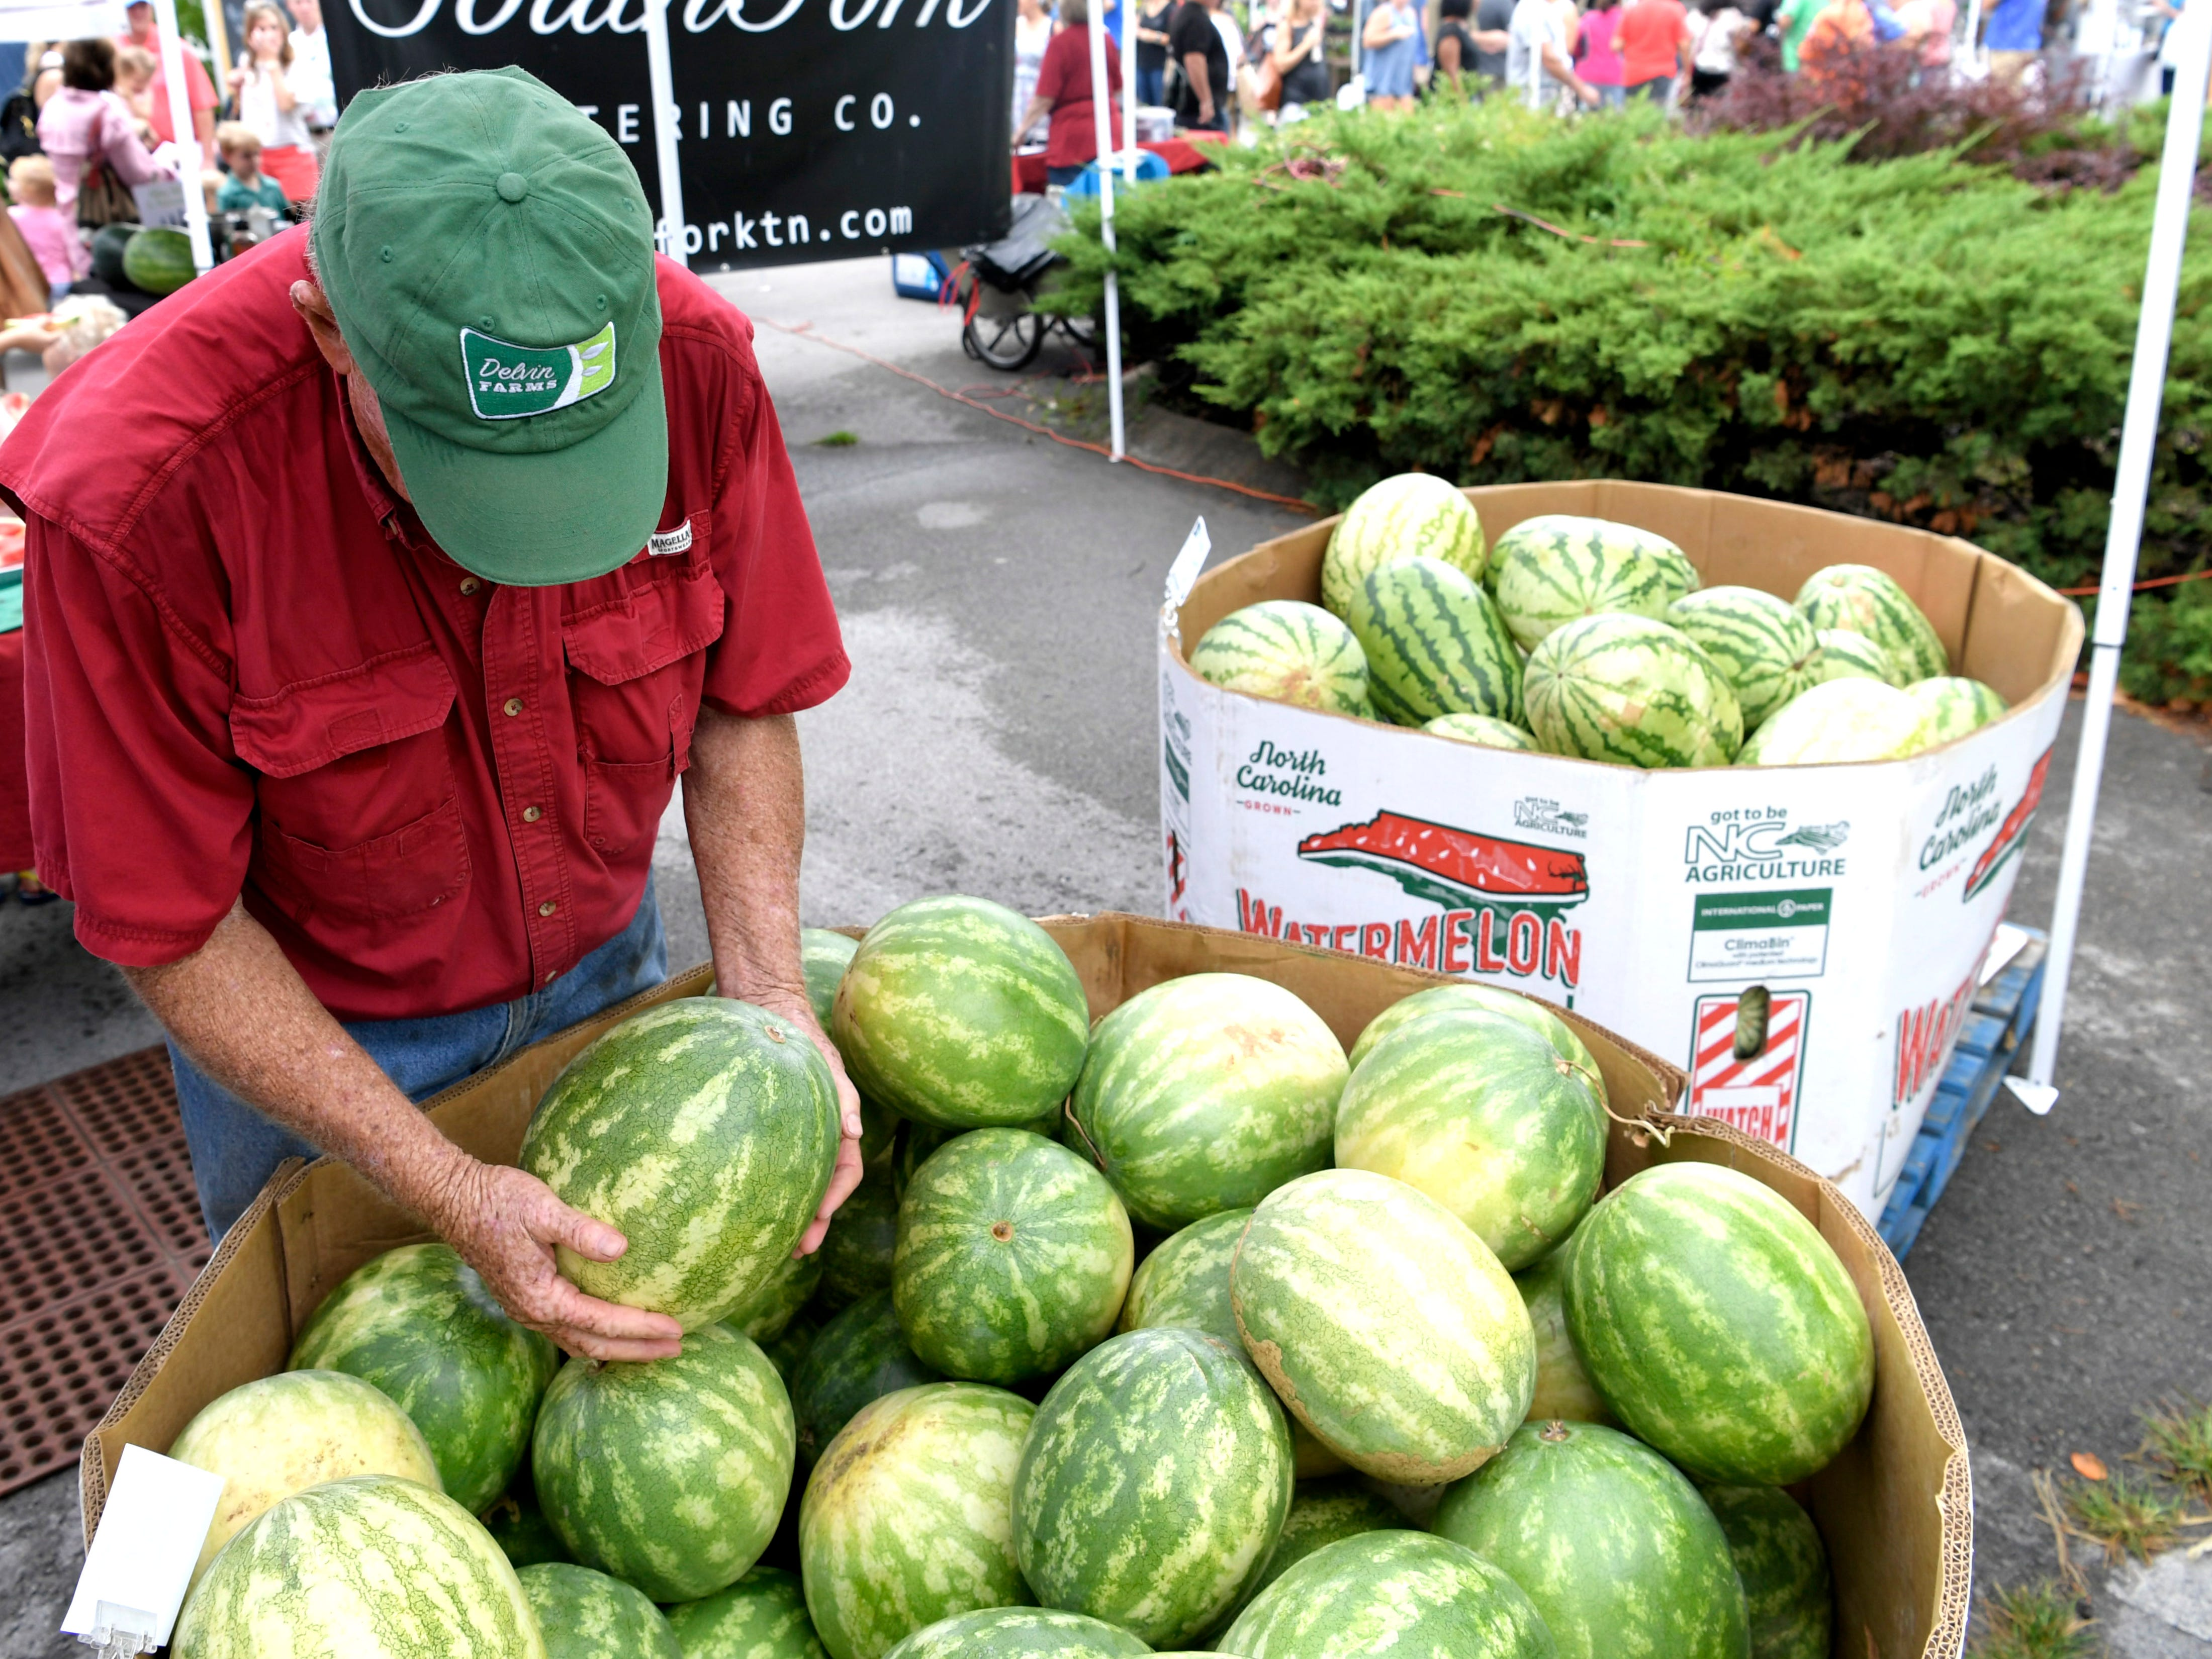 College Grove farmer Hank Delvin Sr. picks out the perfect watermelon for a customer at the Franklin Farmers Market in Franklin, Tenn. on Saturday,  August 18, 2018.